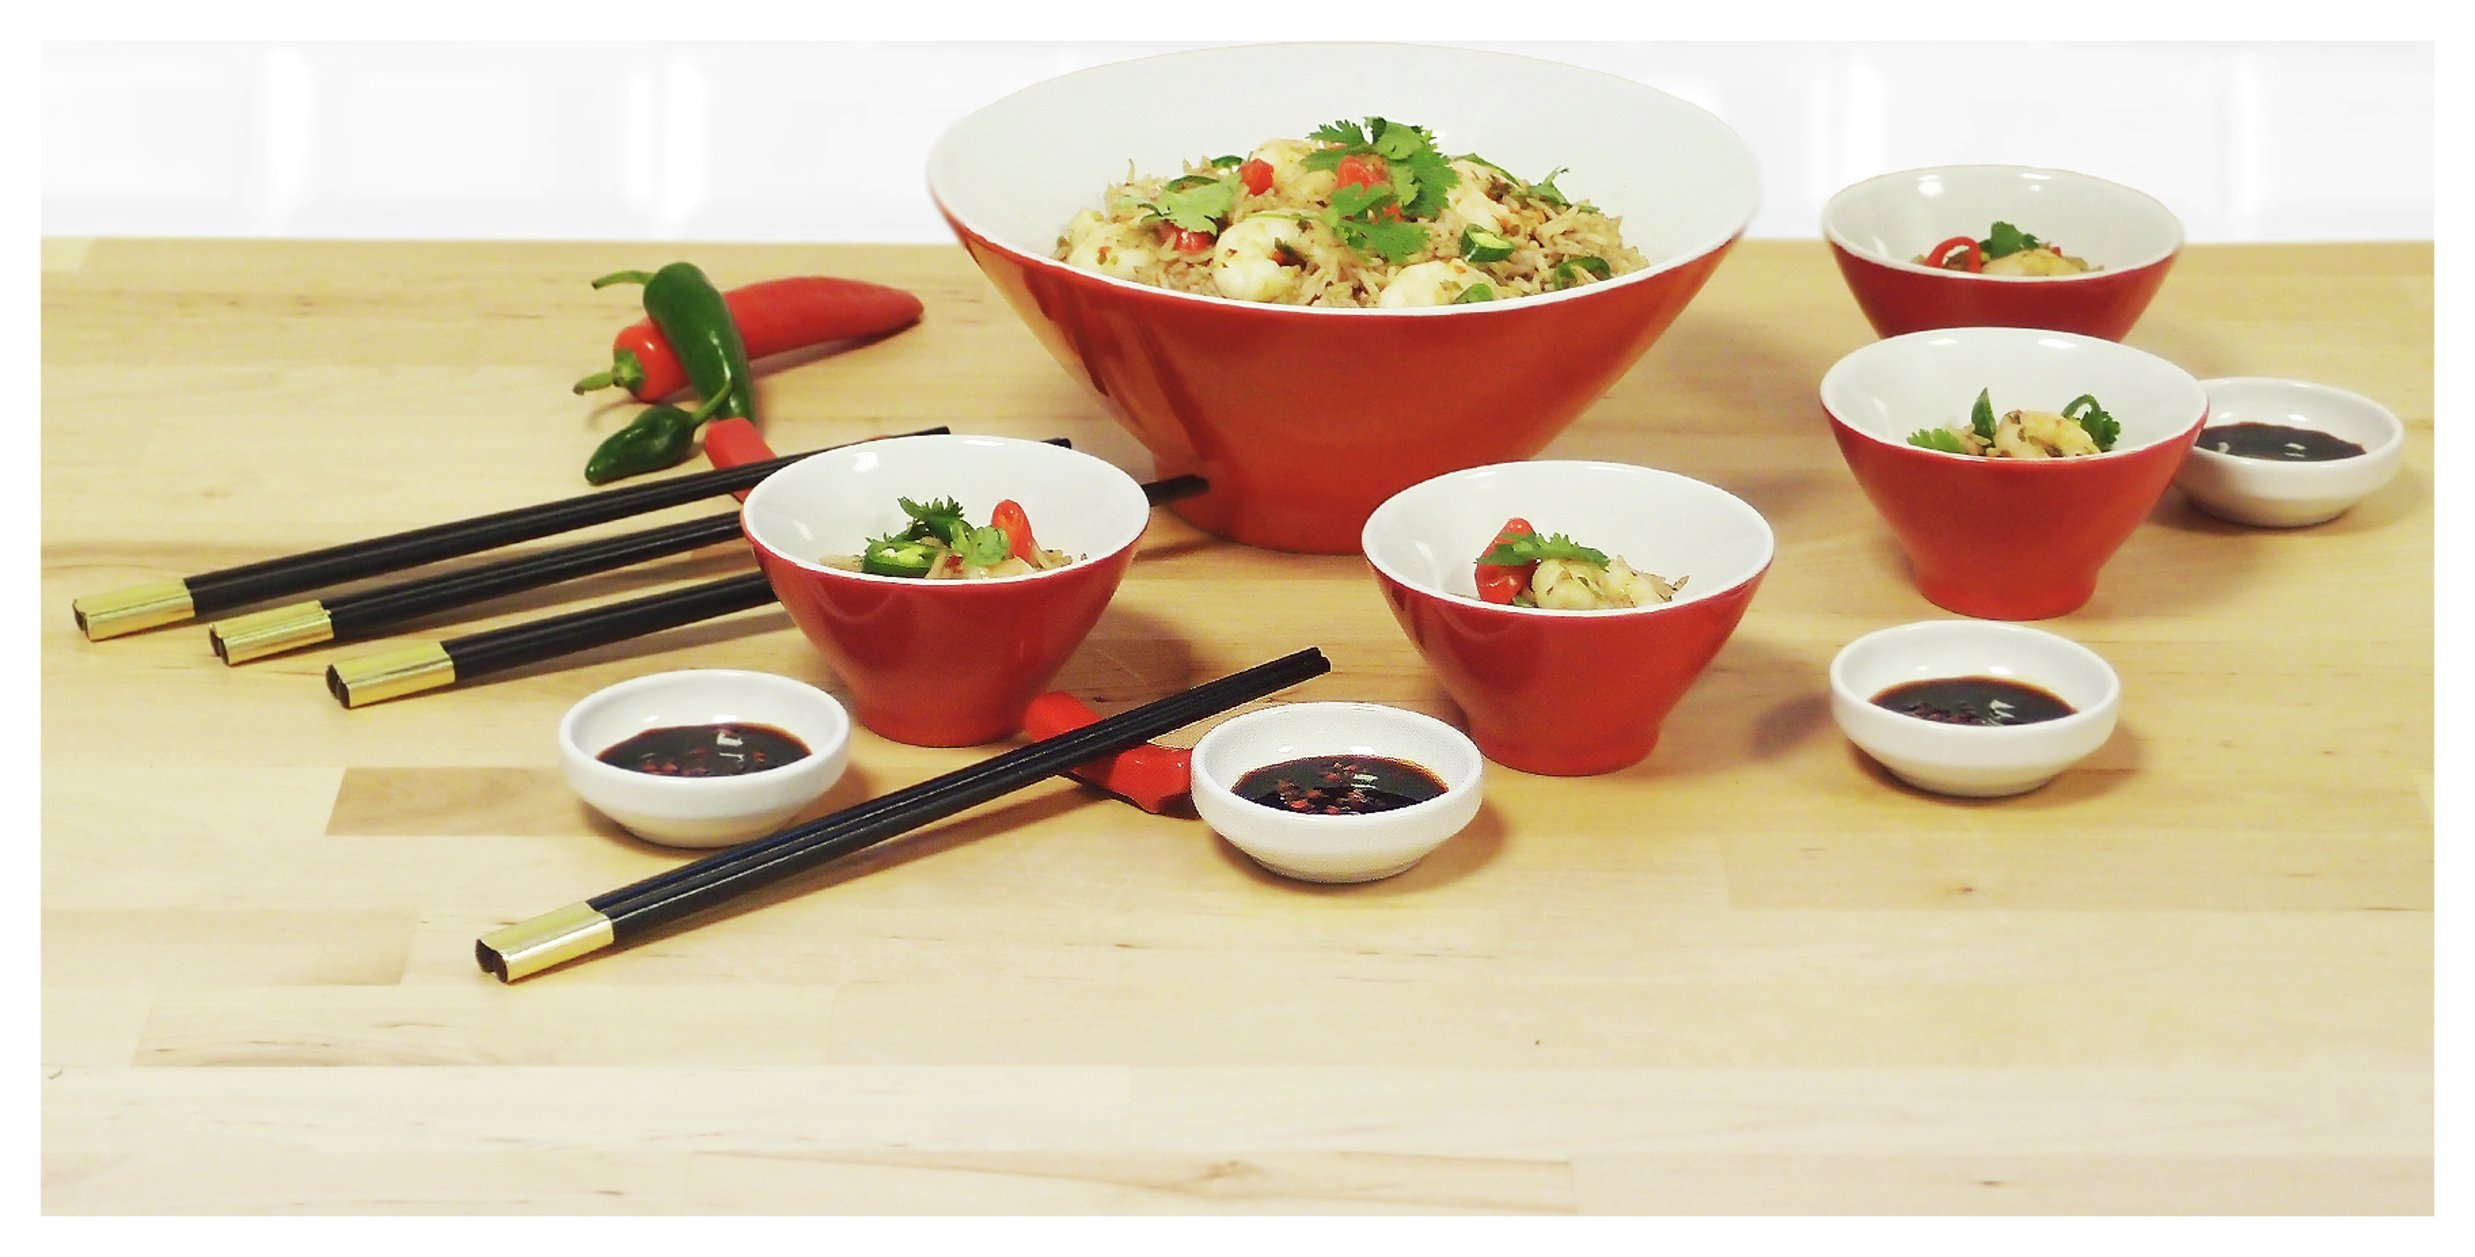 waterside-21-piece-porcelain-chinese-dinner-set-red